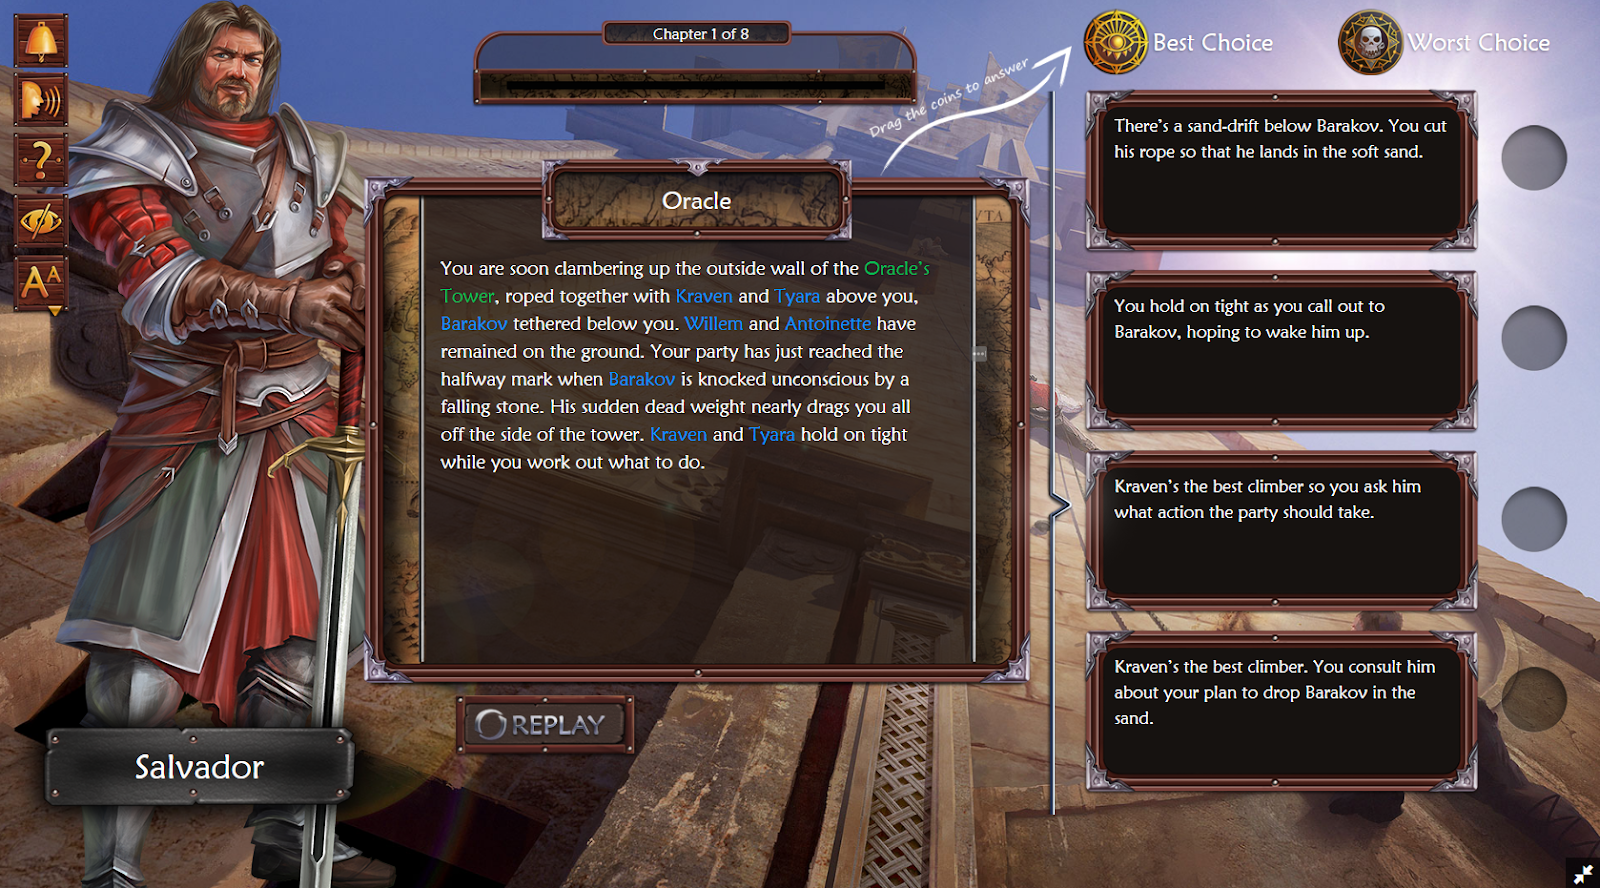 Owiwi game interface